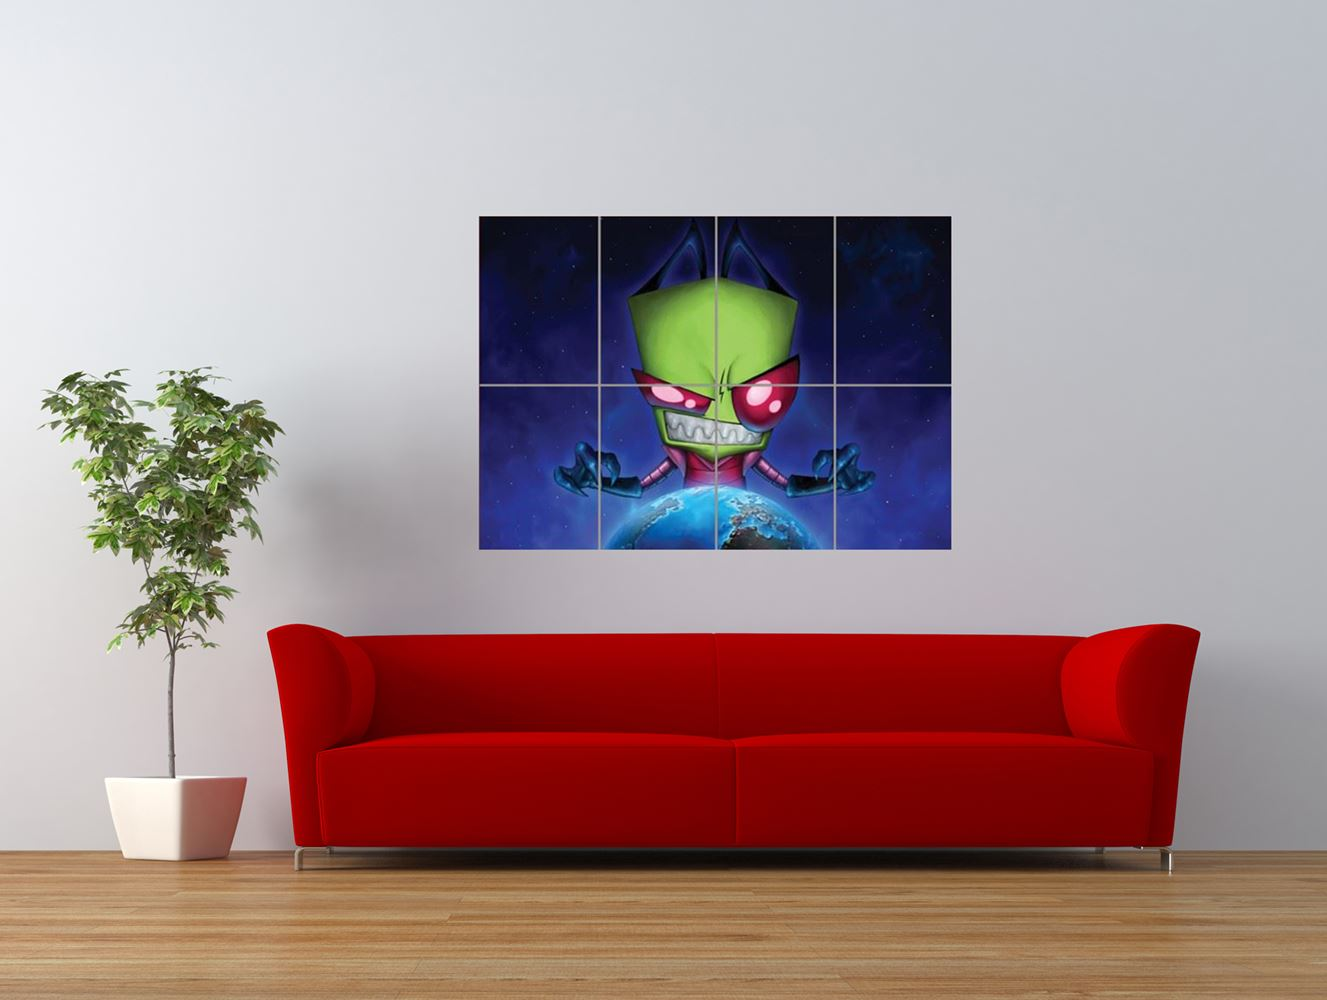 invader zim cartoon kids television giant art print panel poster nor0042 ebay. Black Bedroom Furniture Sets. Home Design Ideas